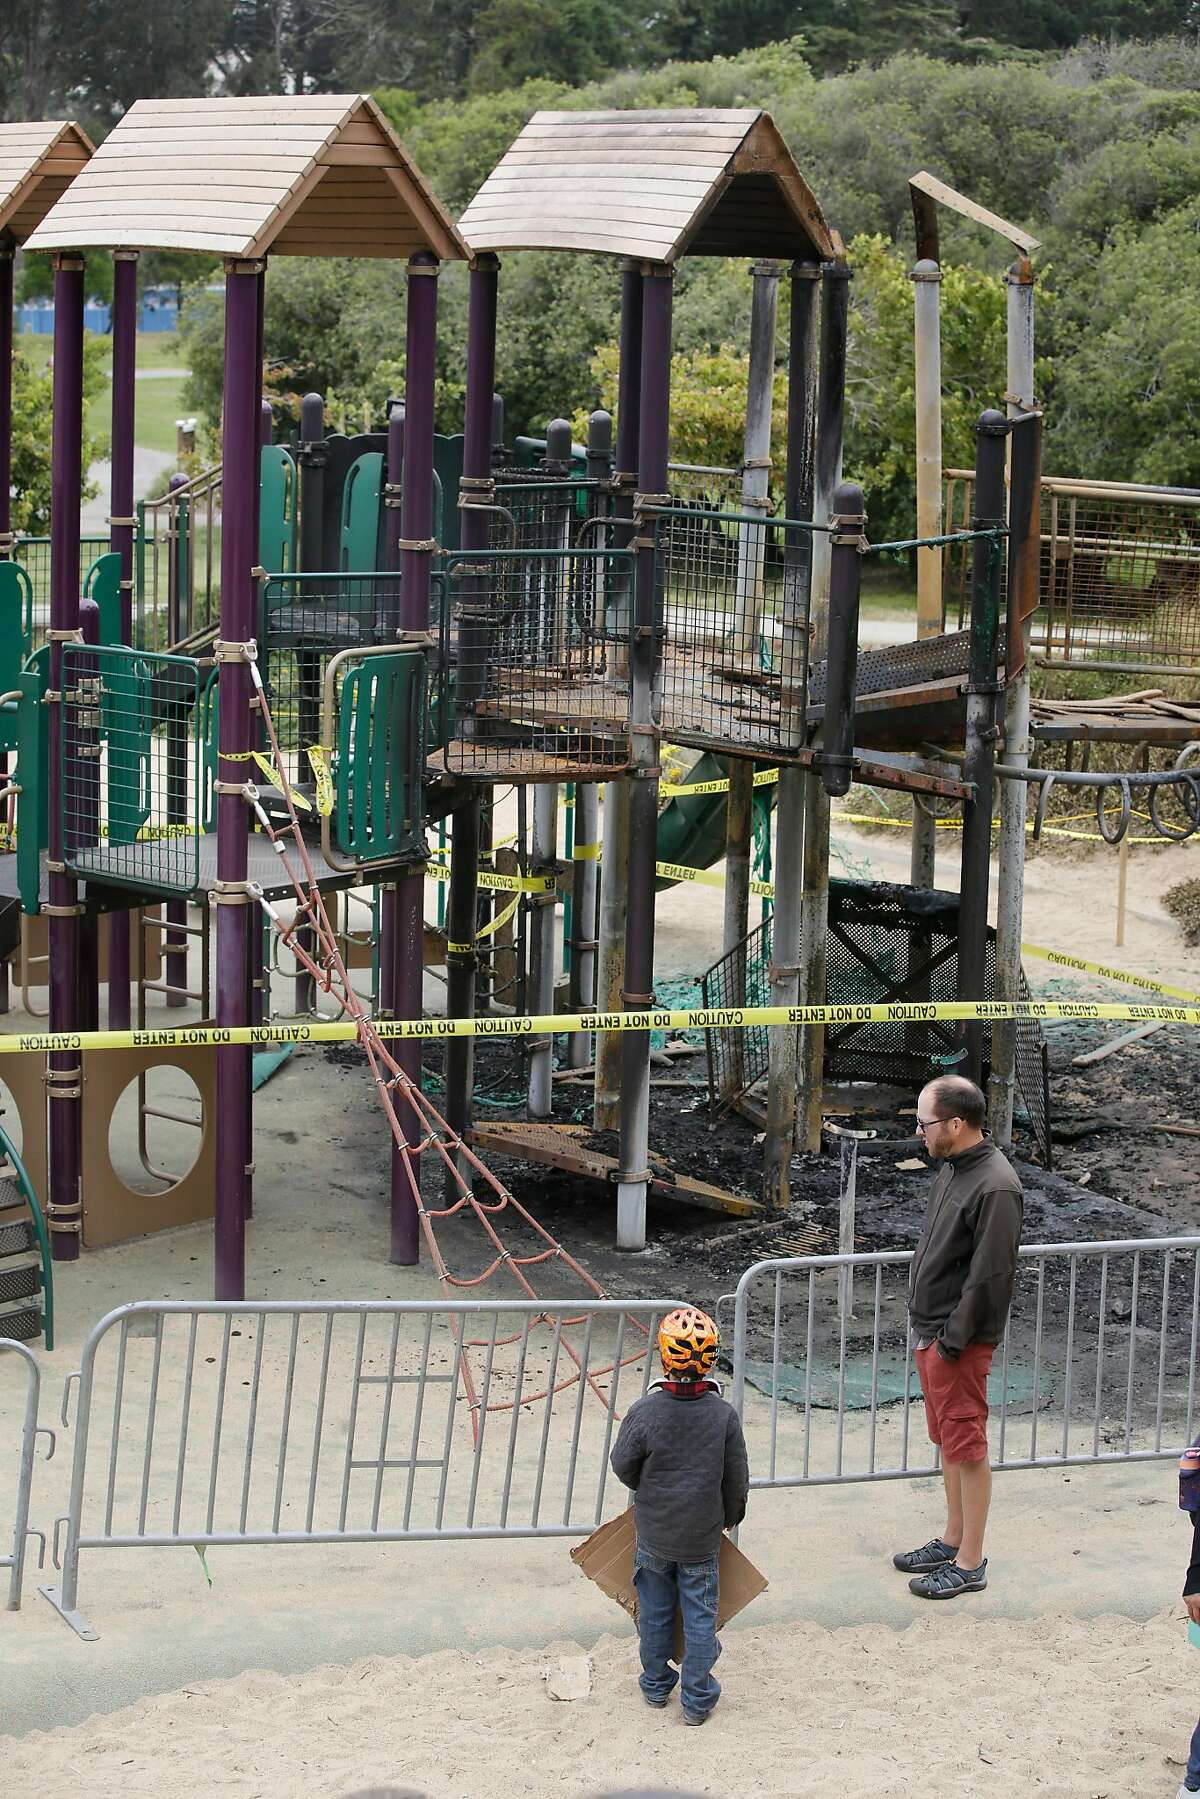 A father and son take in the view of a vandalized play structure at Koret Children's playground in Golden Gate Park during a visit on Wednesday, June 28, 2017 in San Francisco, Calif.